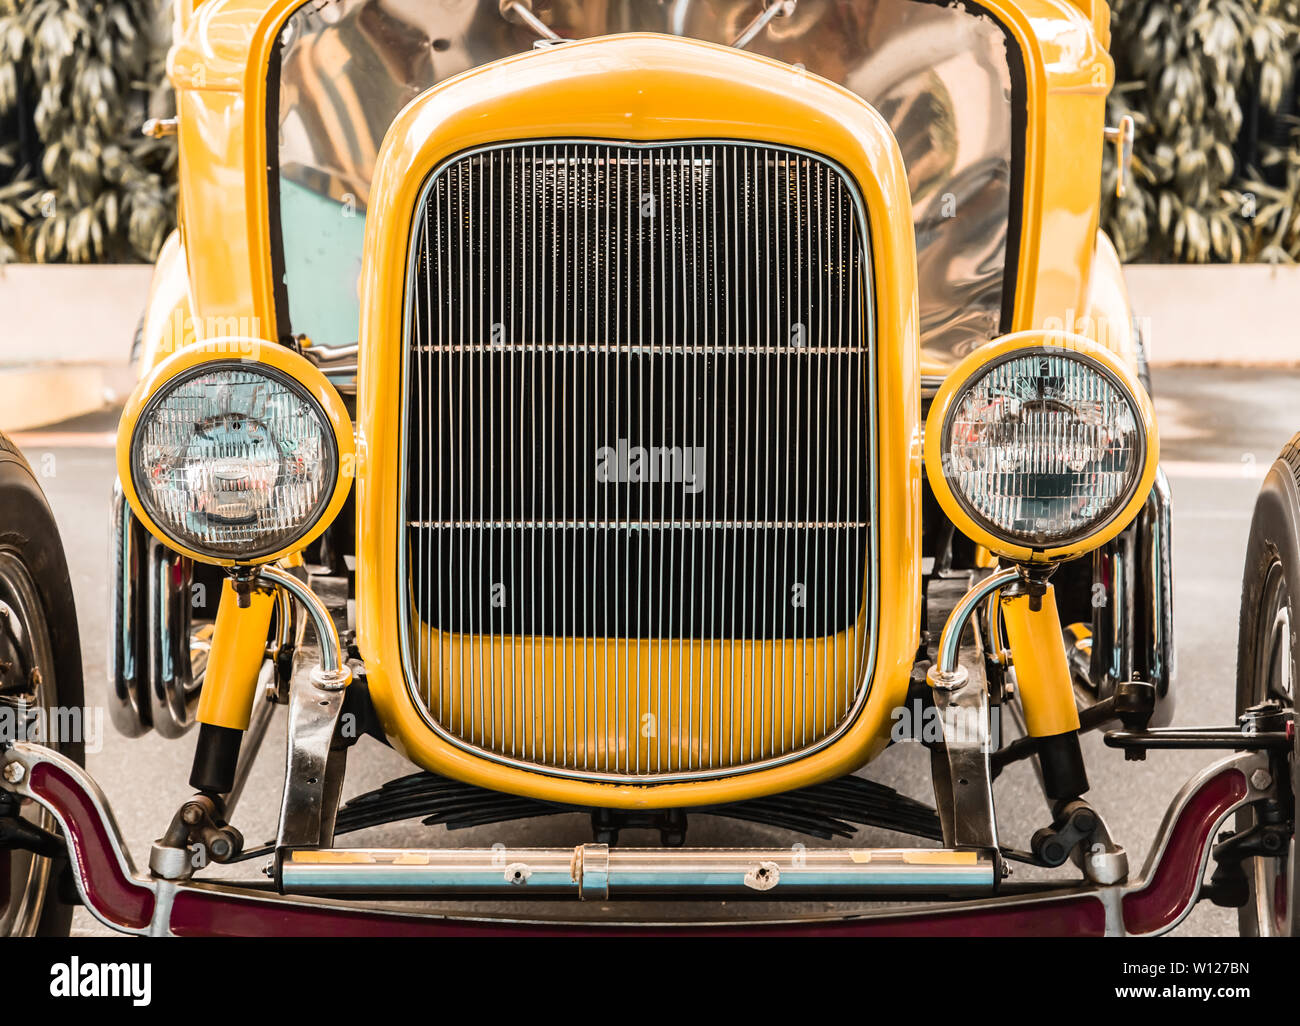 yellow color vintage car head view from front - Stock Image